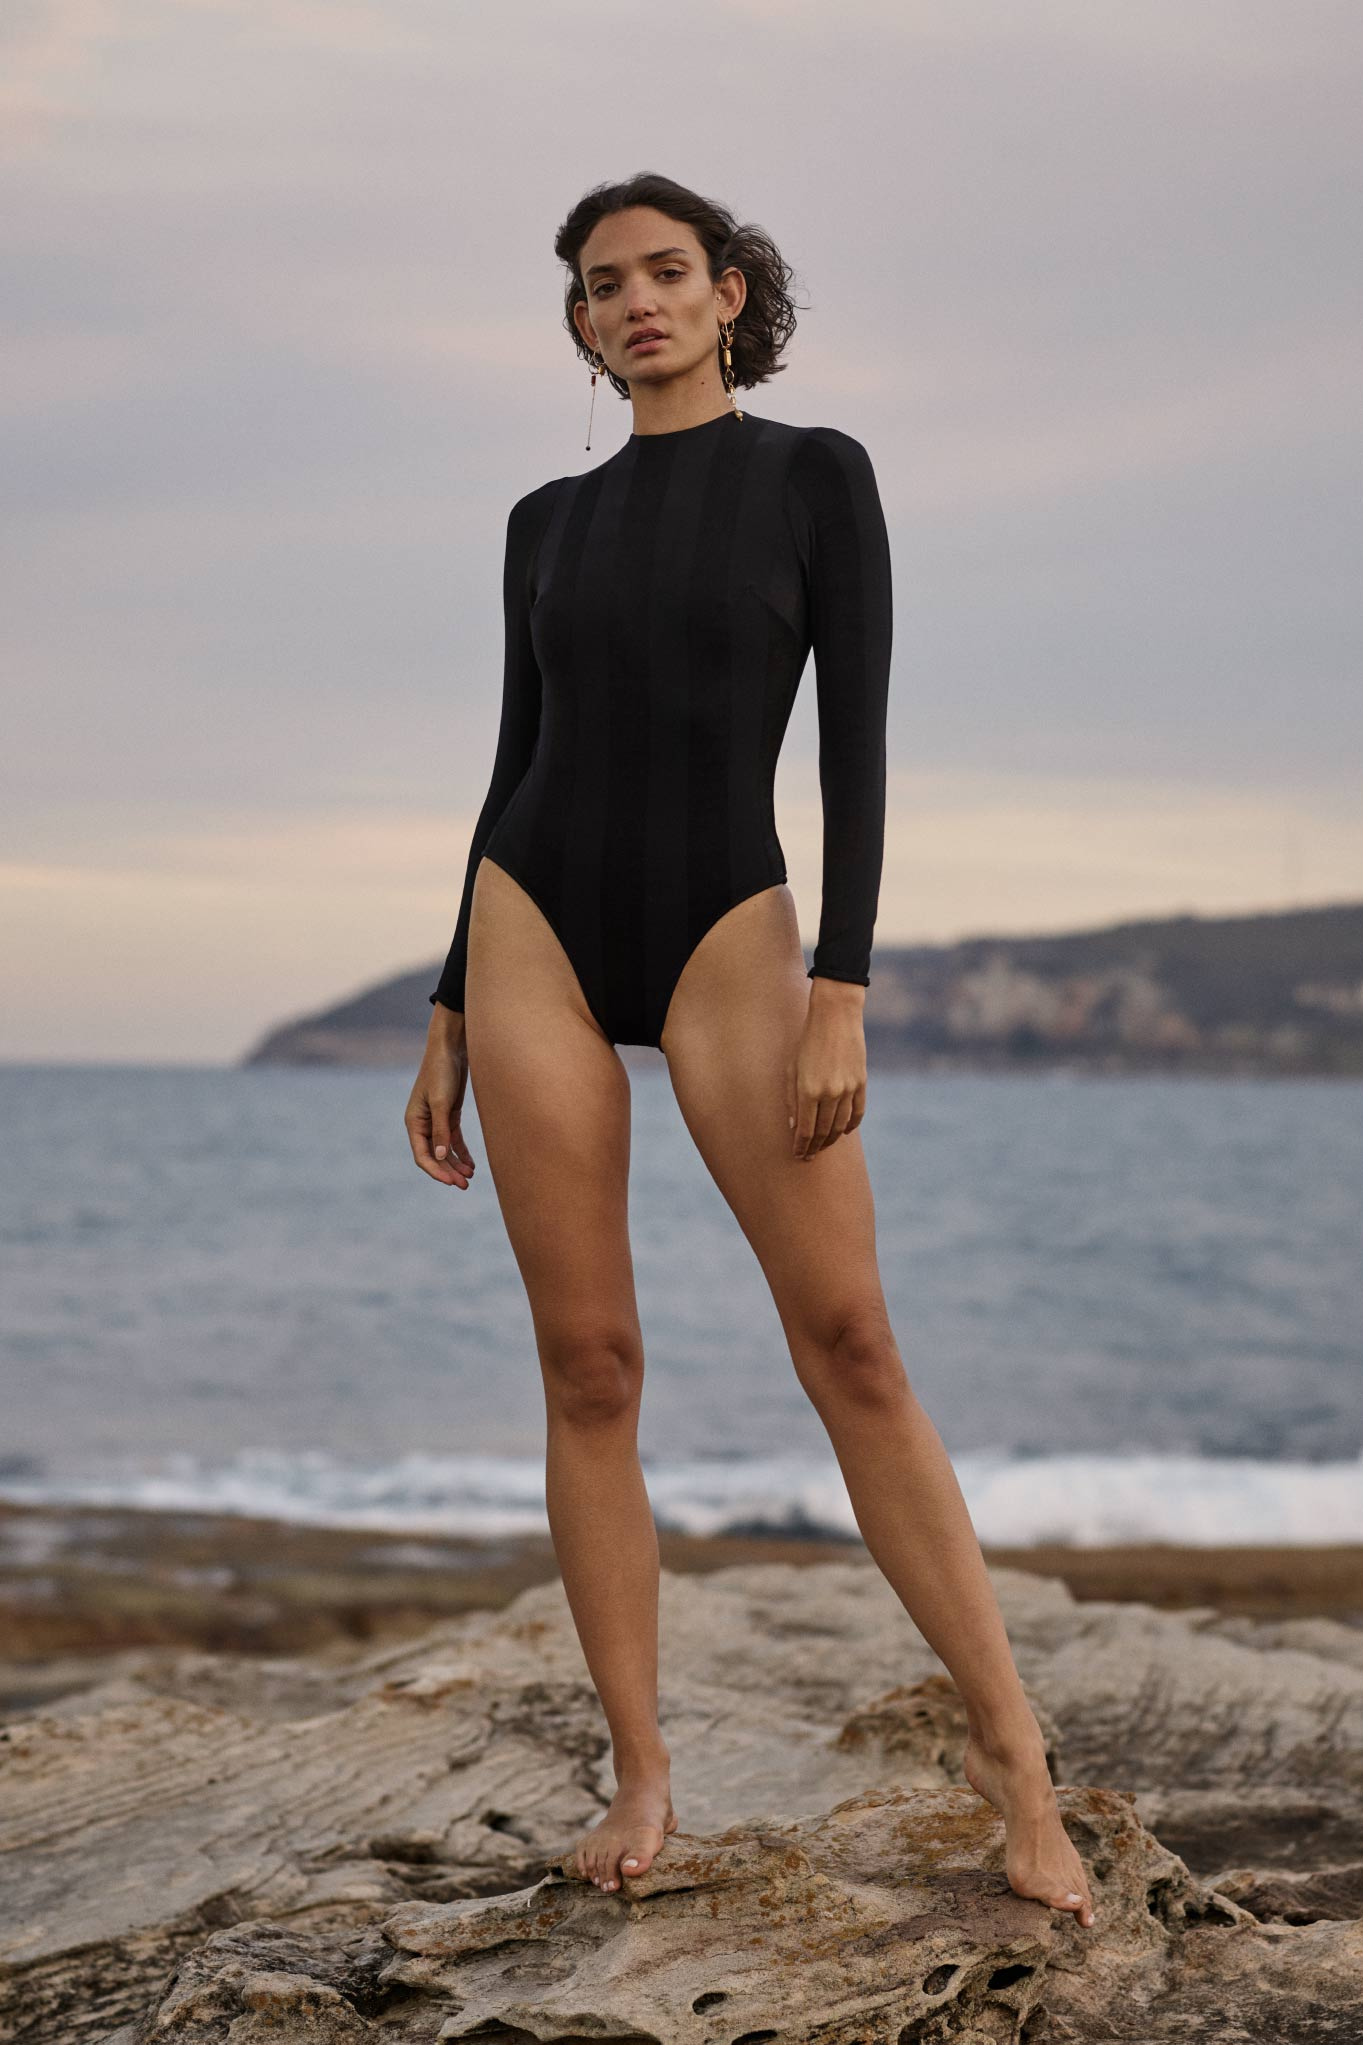 BONDI BORN's designer swimwear creates eternally chic rashguards that cover with style.